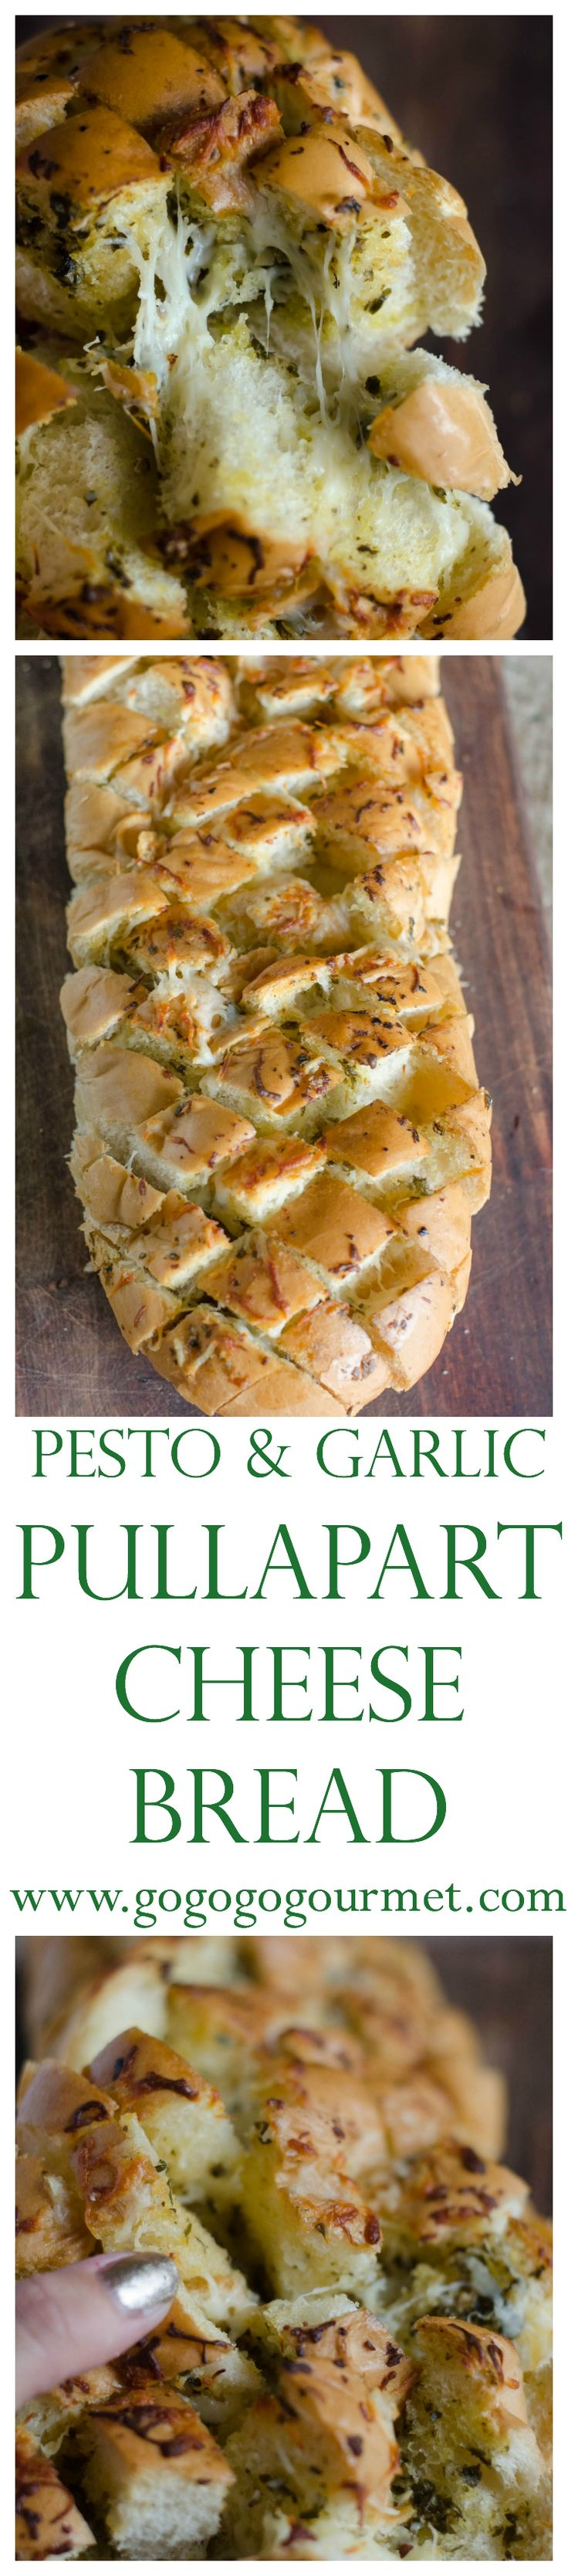 Bread+Butter+Garlic+Cheese > anything ever. Everyone loves this! Pesto Garlic Pull-Apart Cheese Bread | Go Go Go Gourmet